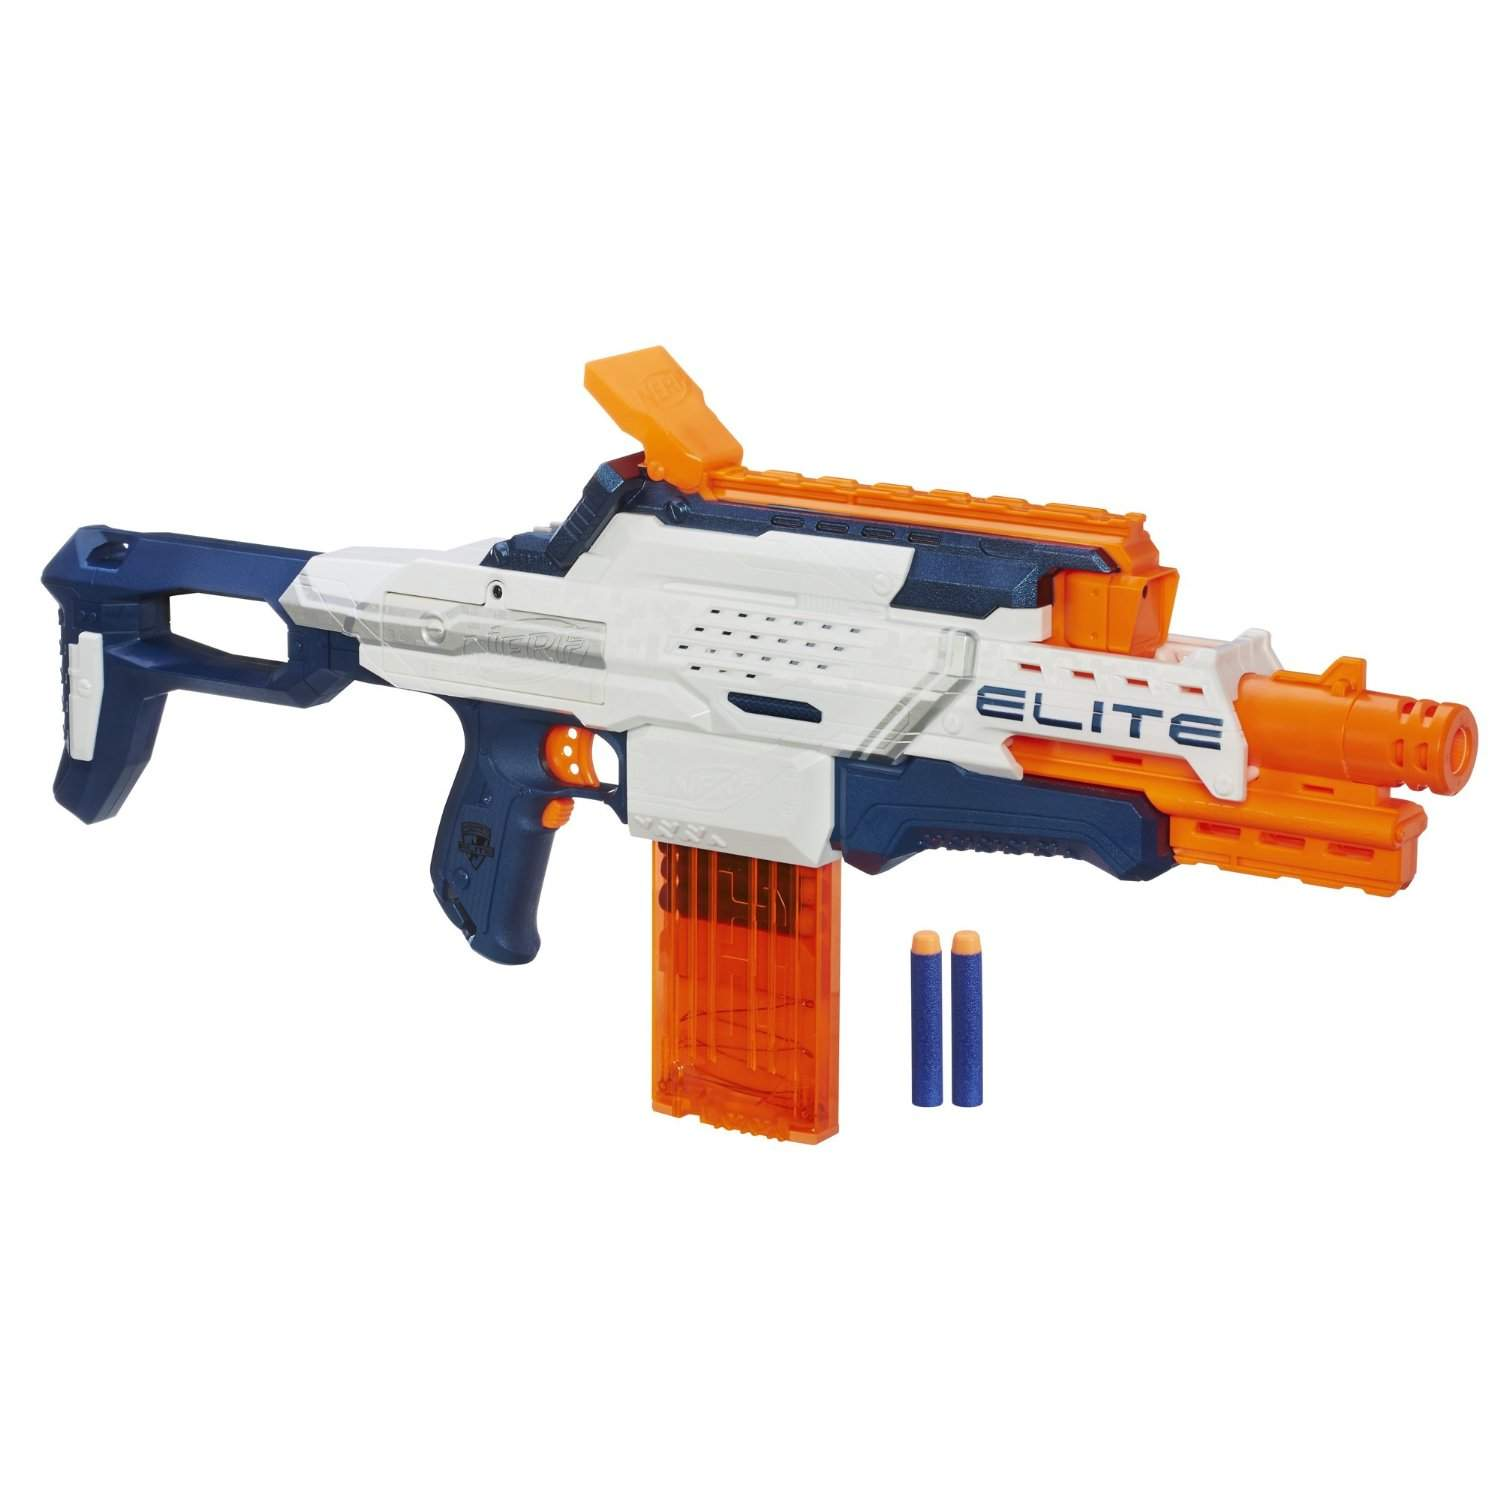 Nerf N-Strike Elite Nerf Cam ECS-12 Blaster Review